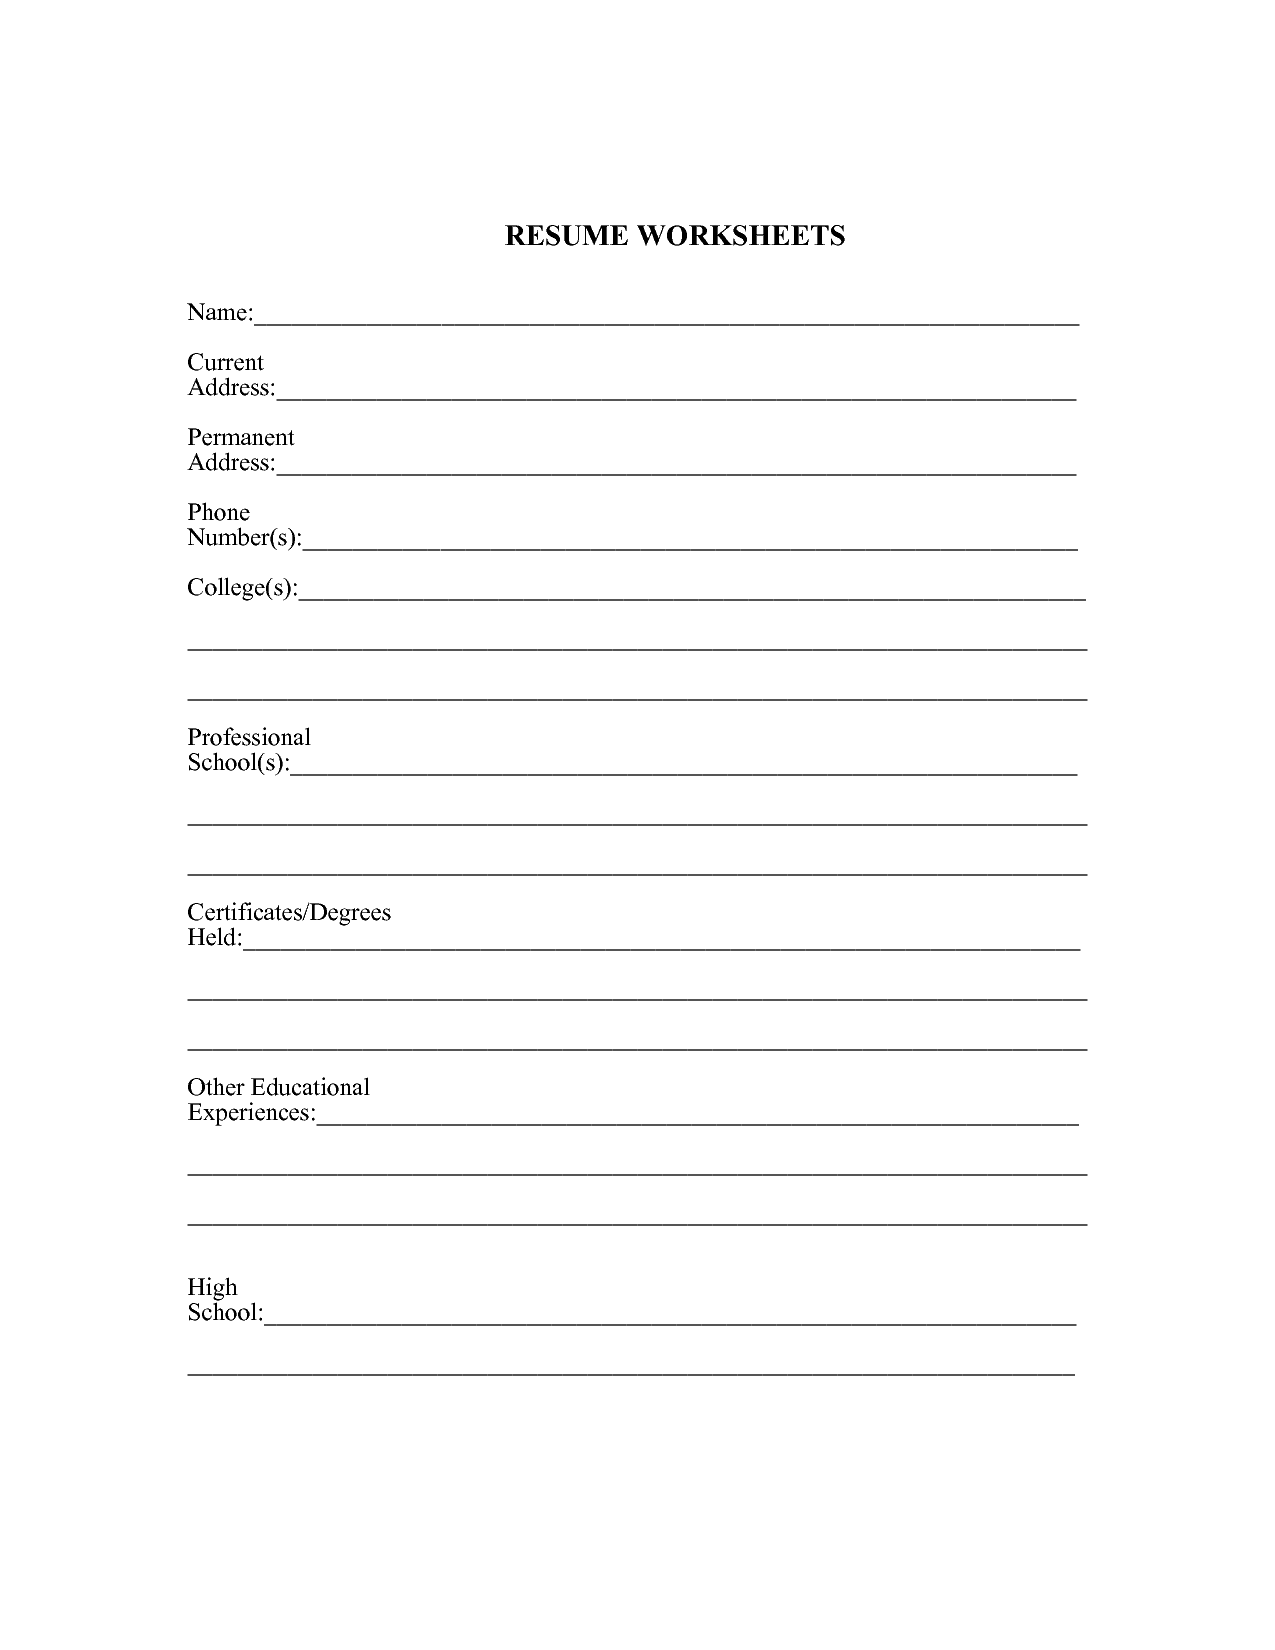 30 College Worksheet For High School Students